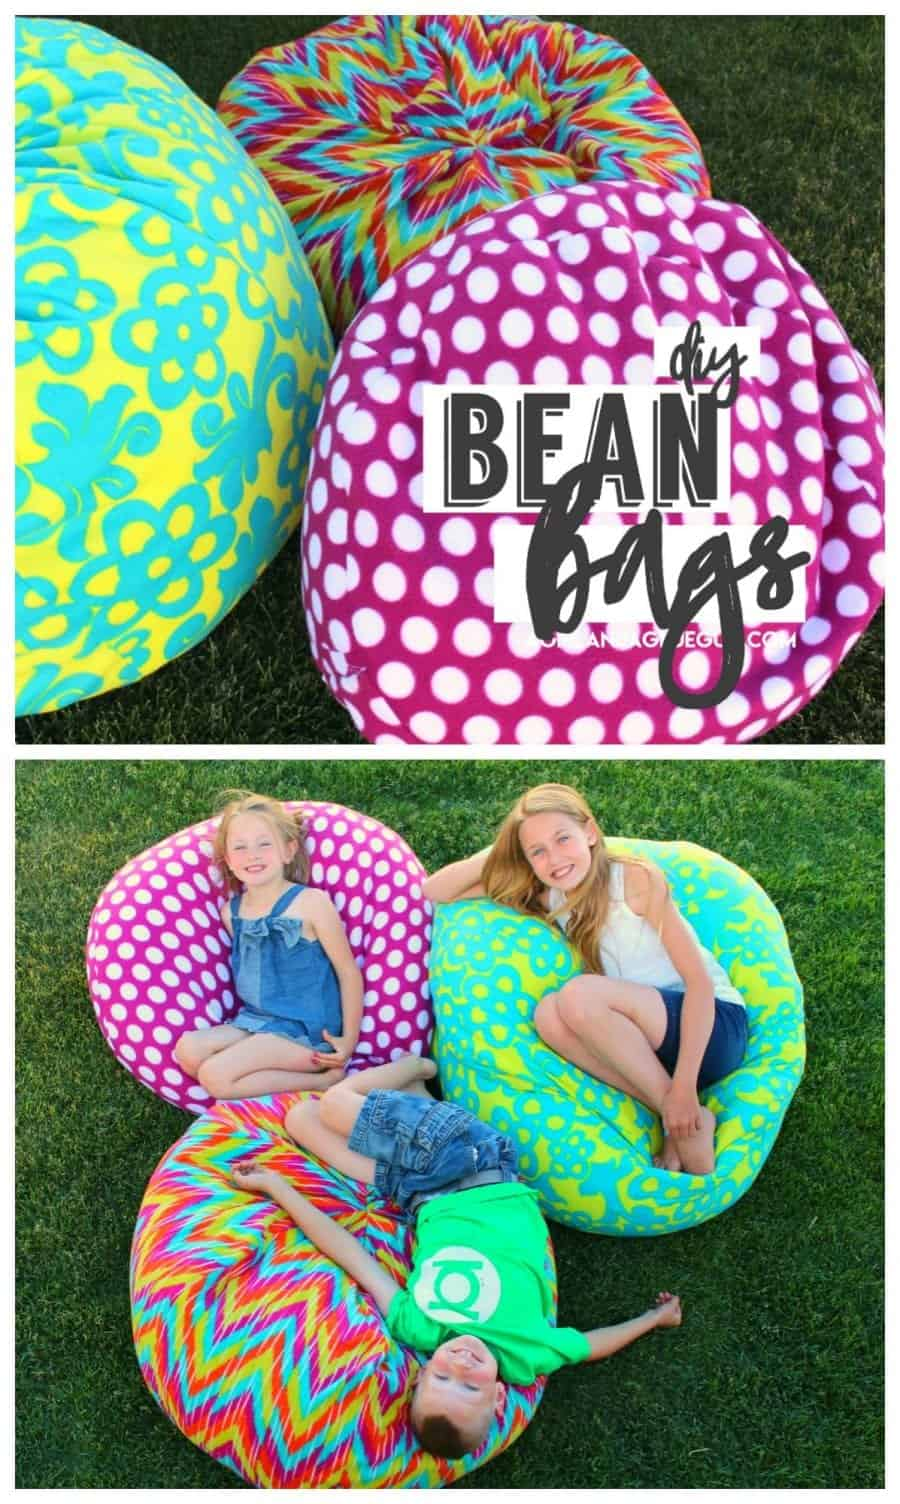 I Have Stuck A Little Futon In Thereu2026but There Is No Other Room For Any  Other Kind Of Furniture! So I Decided To Whip Them Up Some Bean Bags!